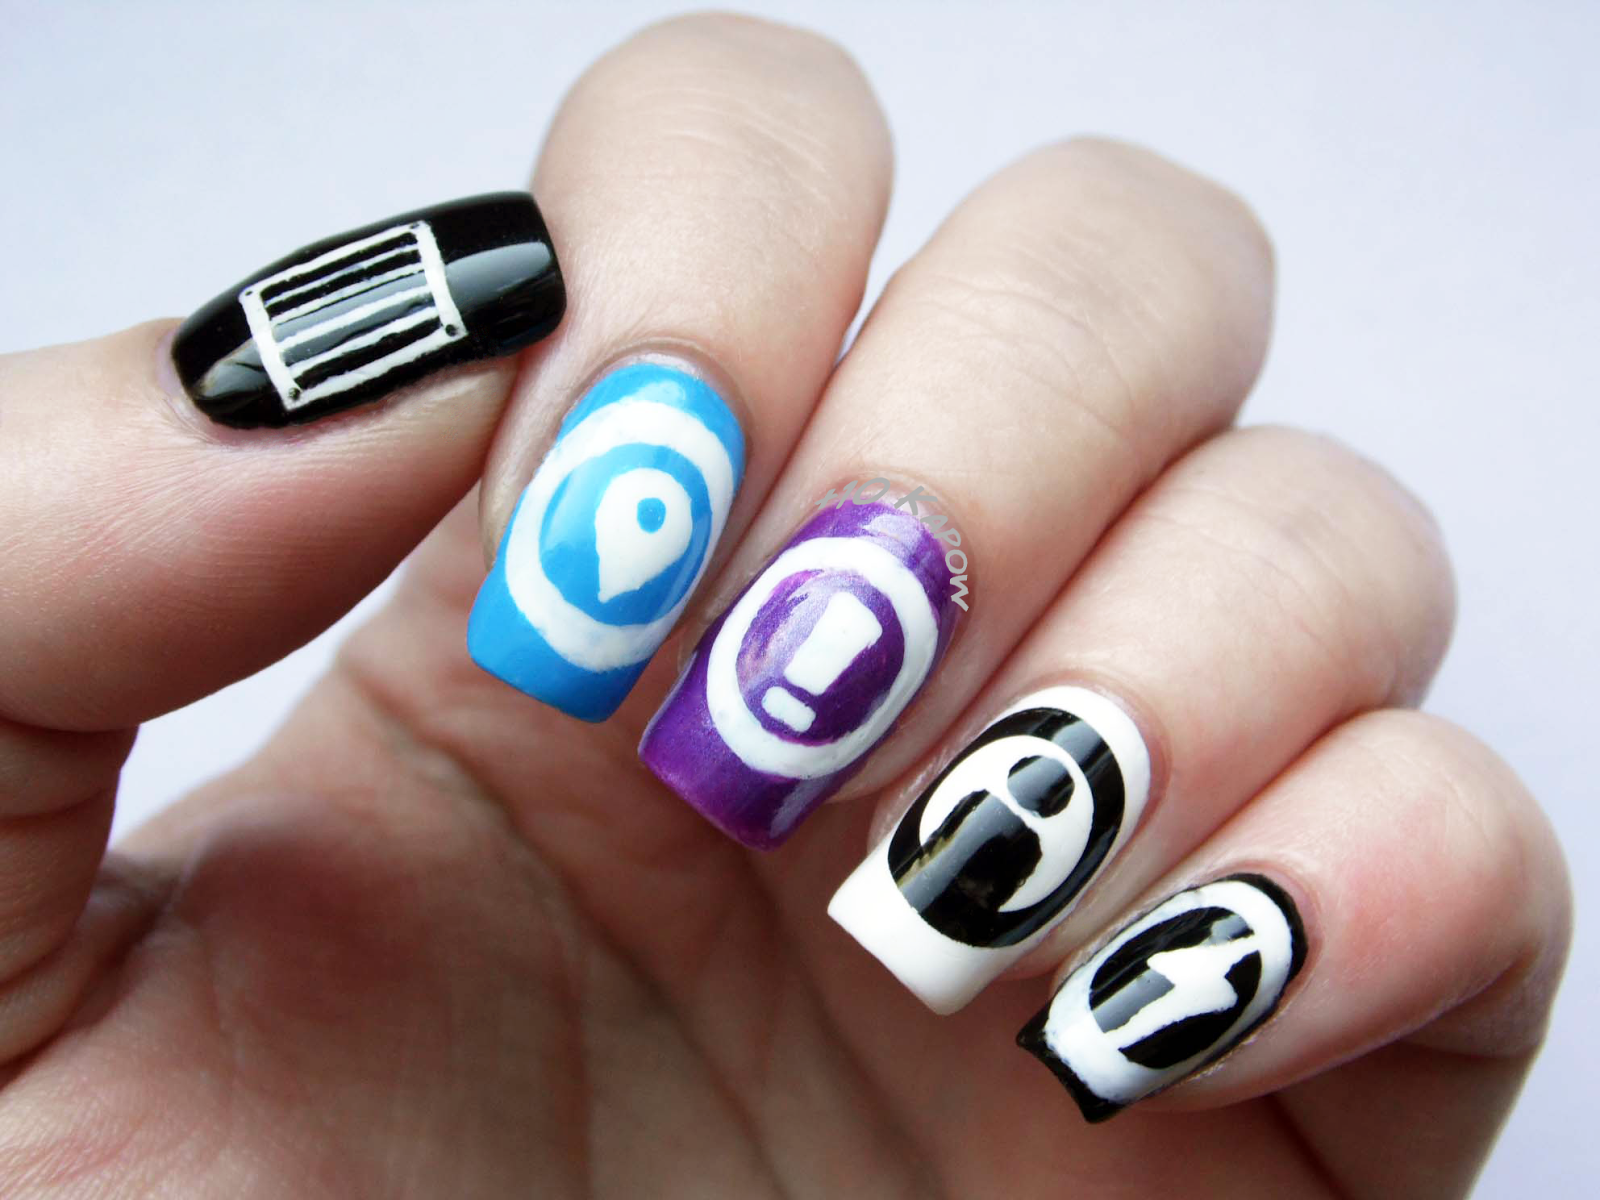 Plus10Kapow: Inspired by Loot Crate- Superfight nails